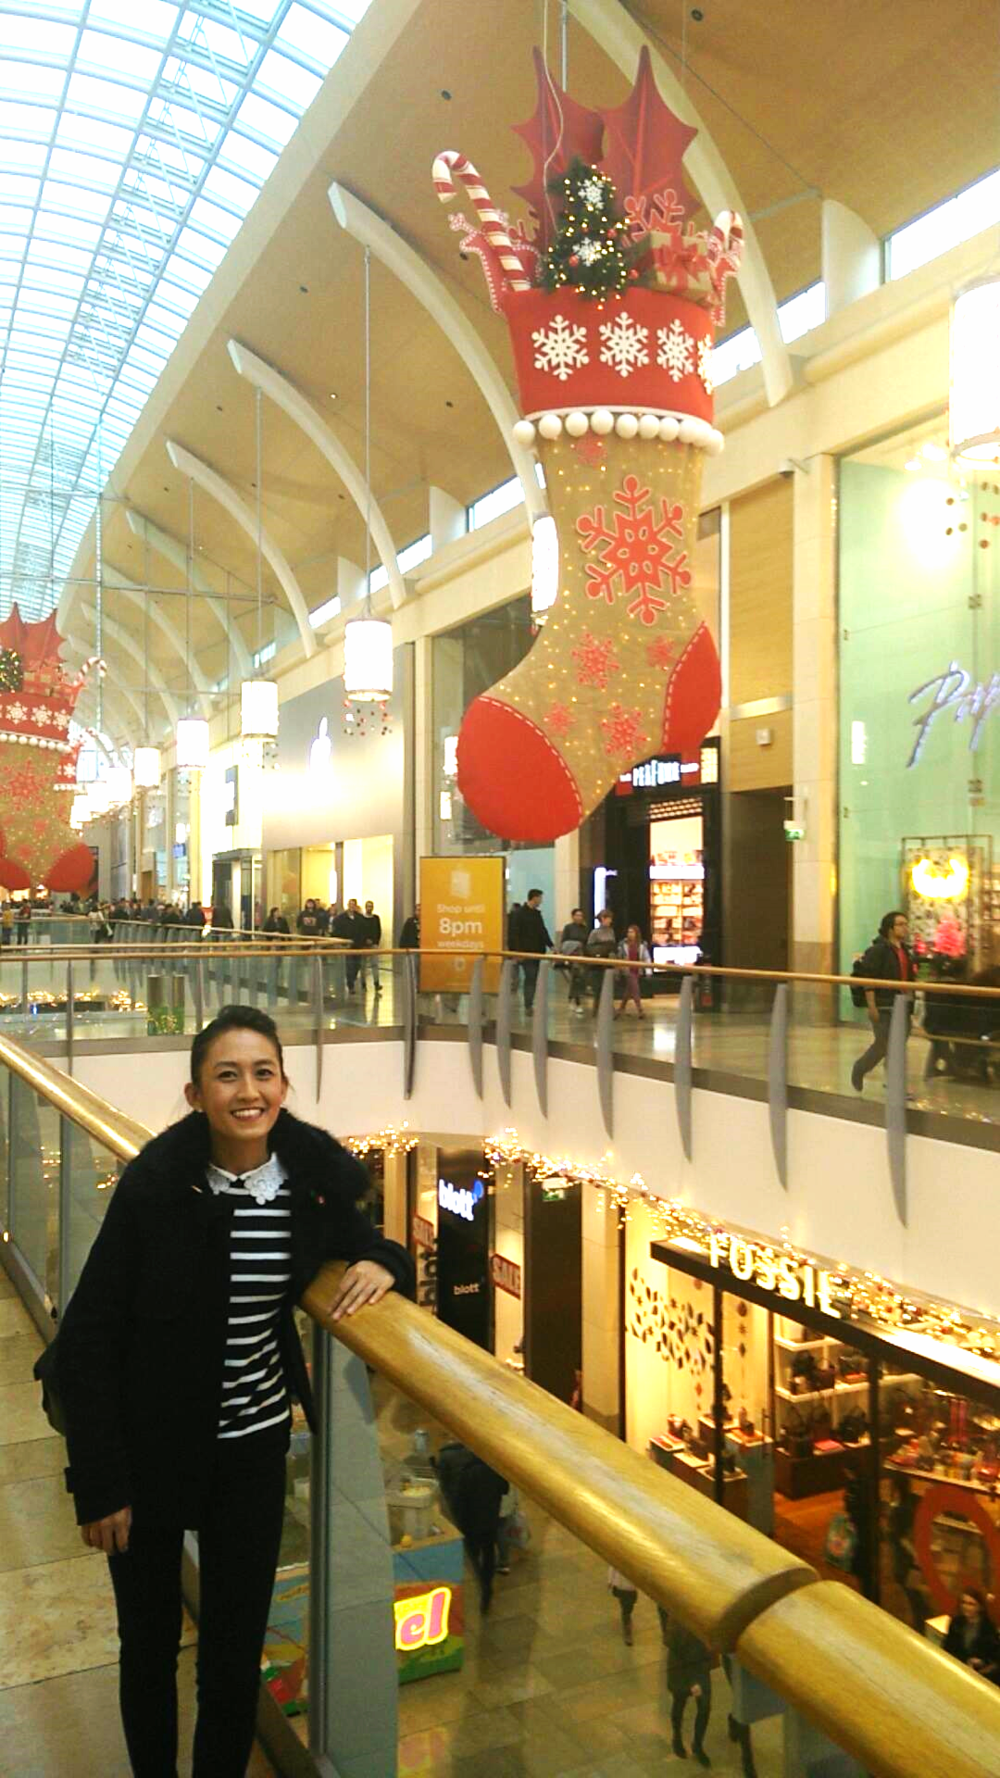 Superpeach Wales blog St. David's Shopping Centre Christmas decorations and me